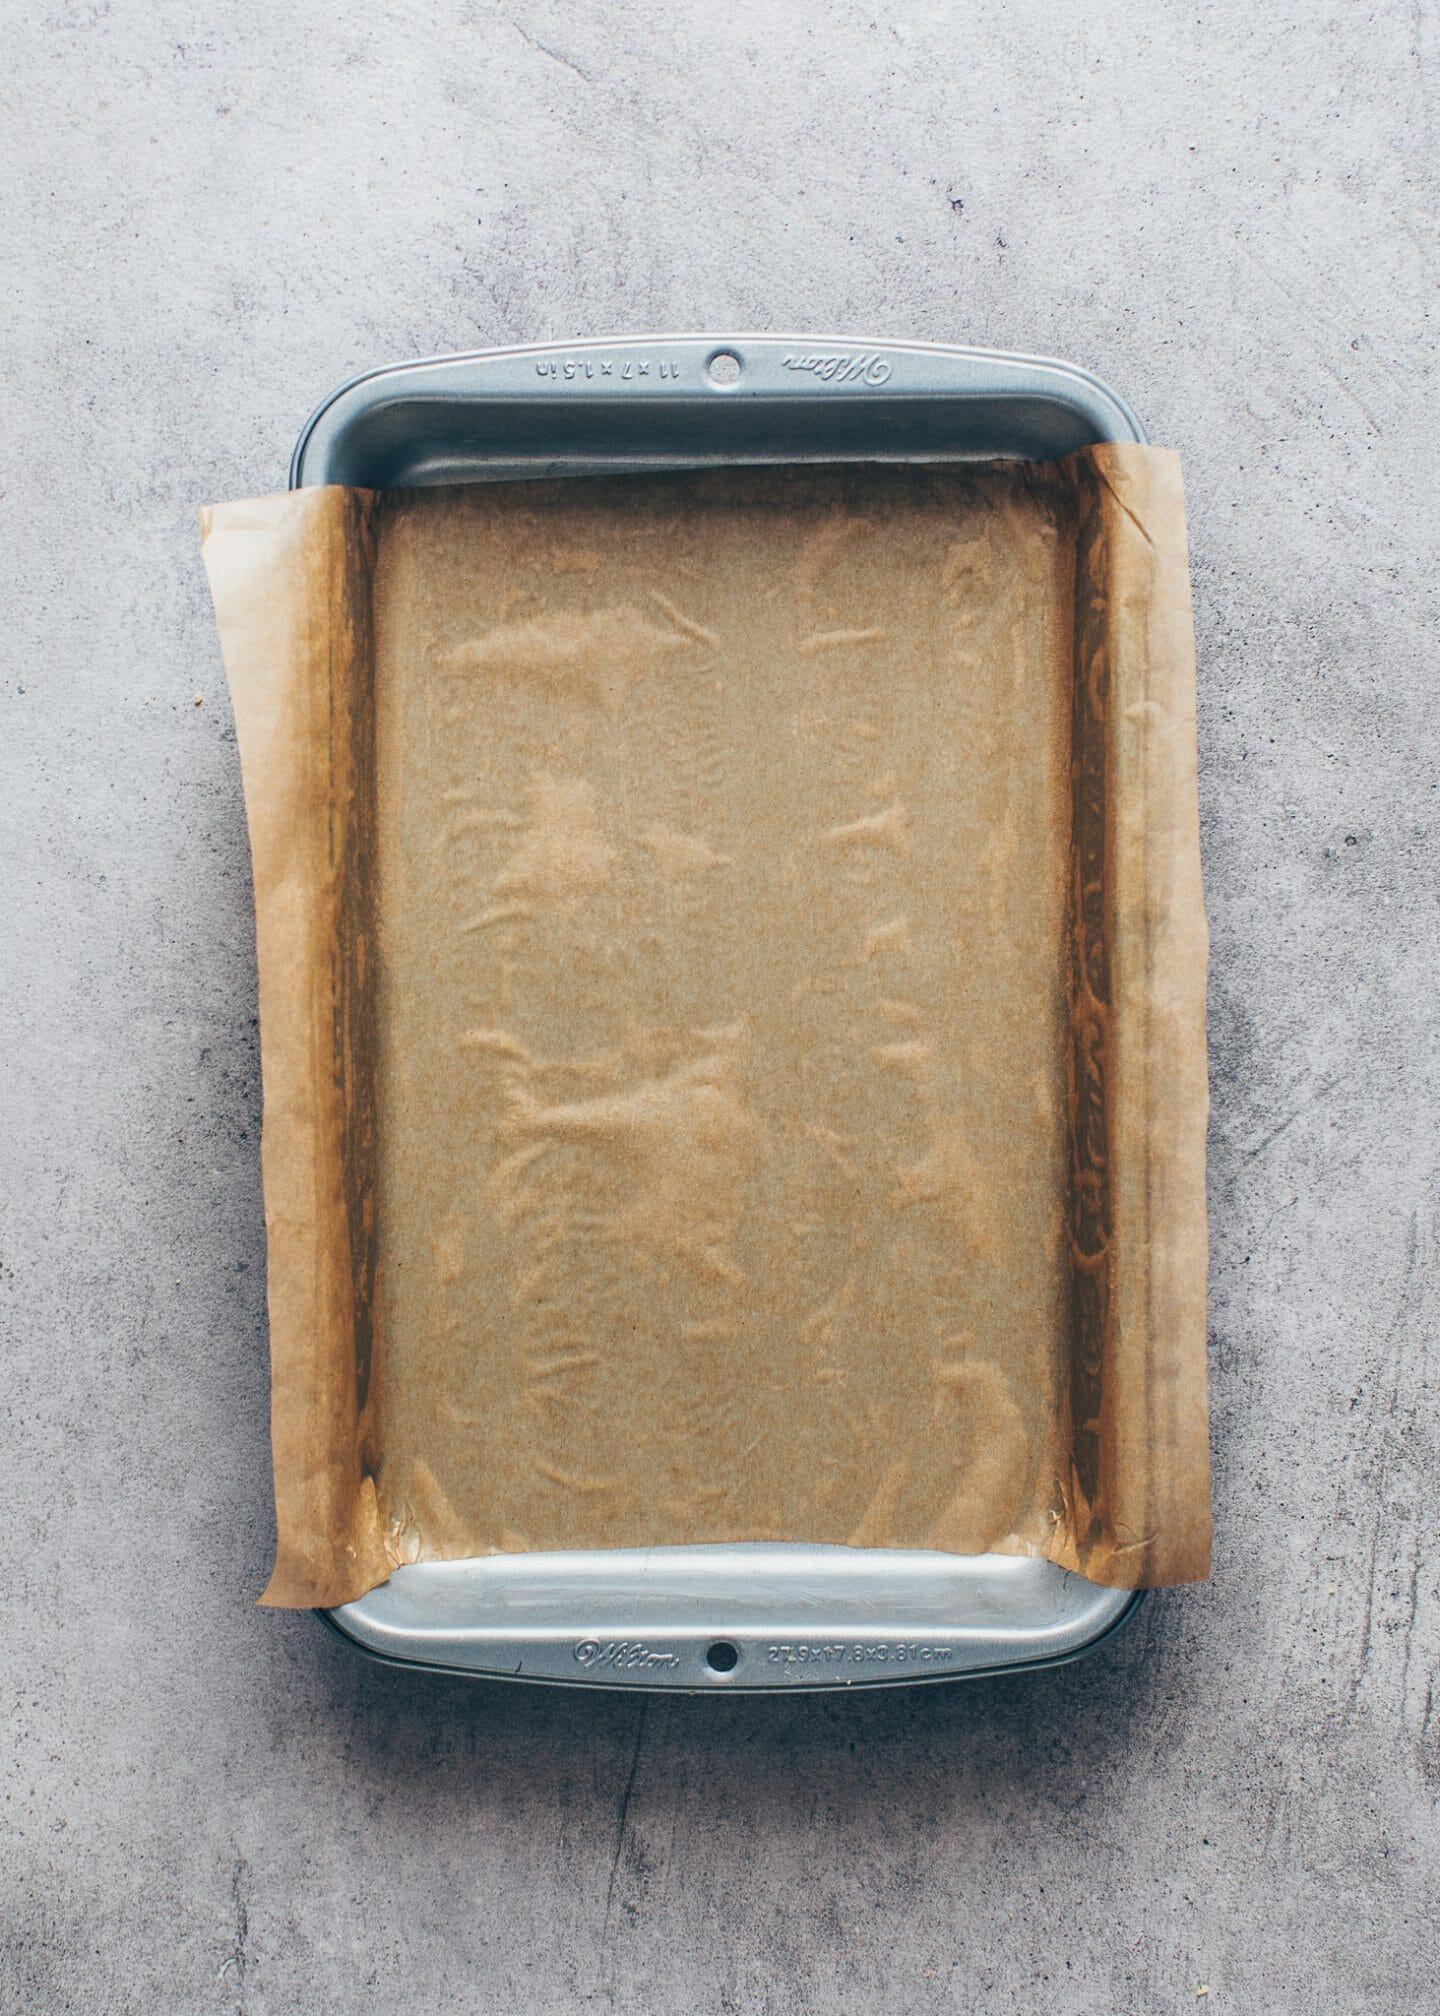 baking pan lined with parchment paper